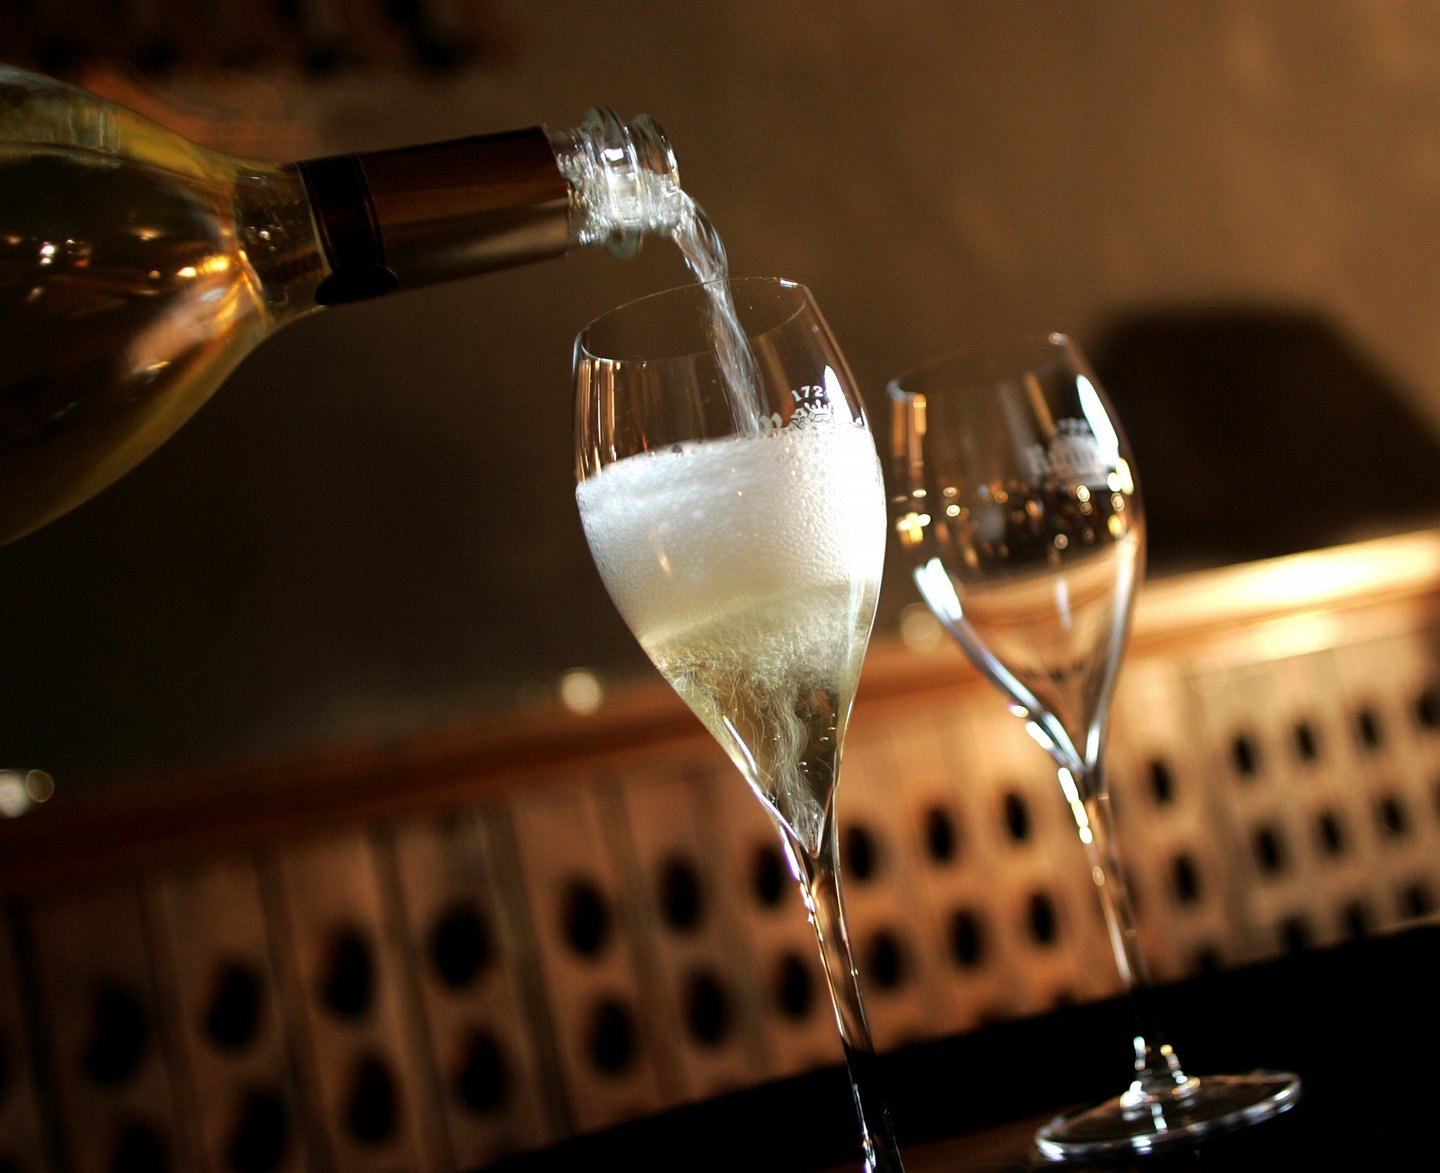 A glass of Champagne is served for a tasting, on December 11, 2008 at the producer Ruinart's cellars in Reims, northeastern France. The once sparkling shipments of France's premium export Champagne have dropped 4,9% during the first 10 months of the year, according to professionnals, but strong sales continue in emerging countries. AFP PHOTO ALAIN JULIEN (Photo credit should read ALAIN JULIEN/AFP/Getty Images)